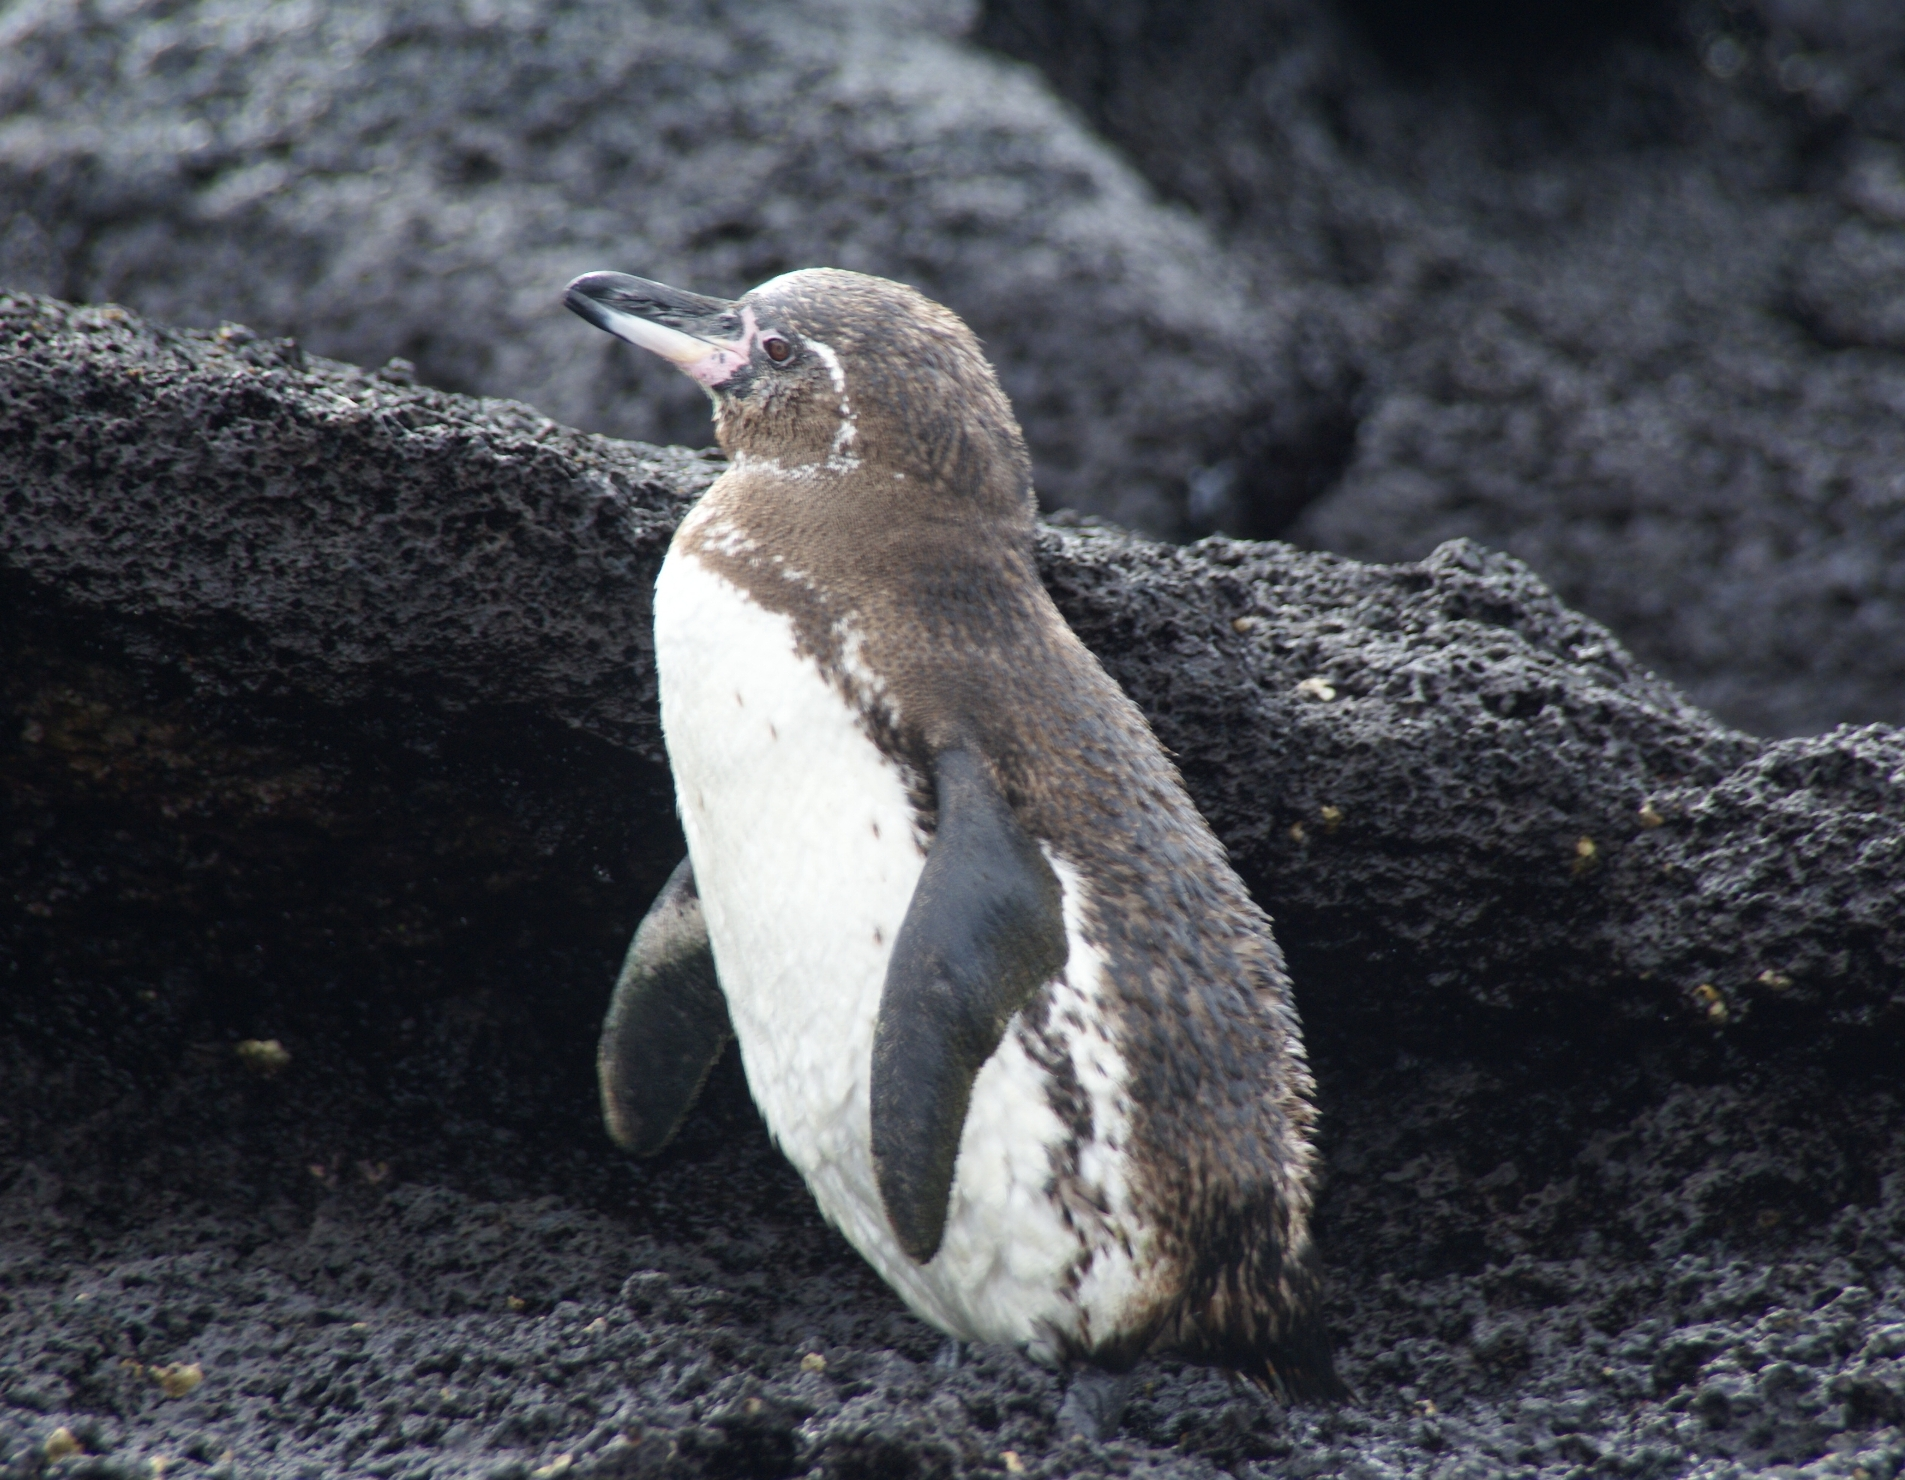 Penguin Standing on Black Shore - SEO Customer Paradigm